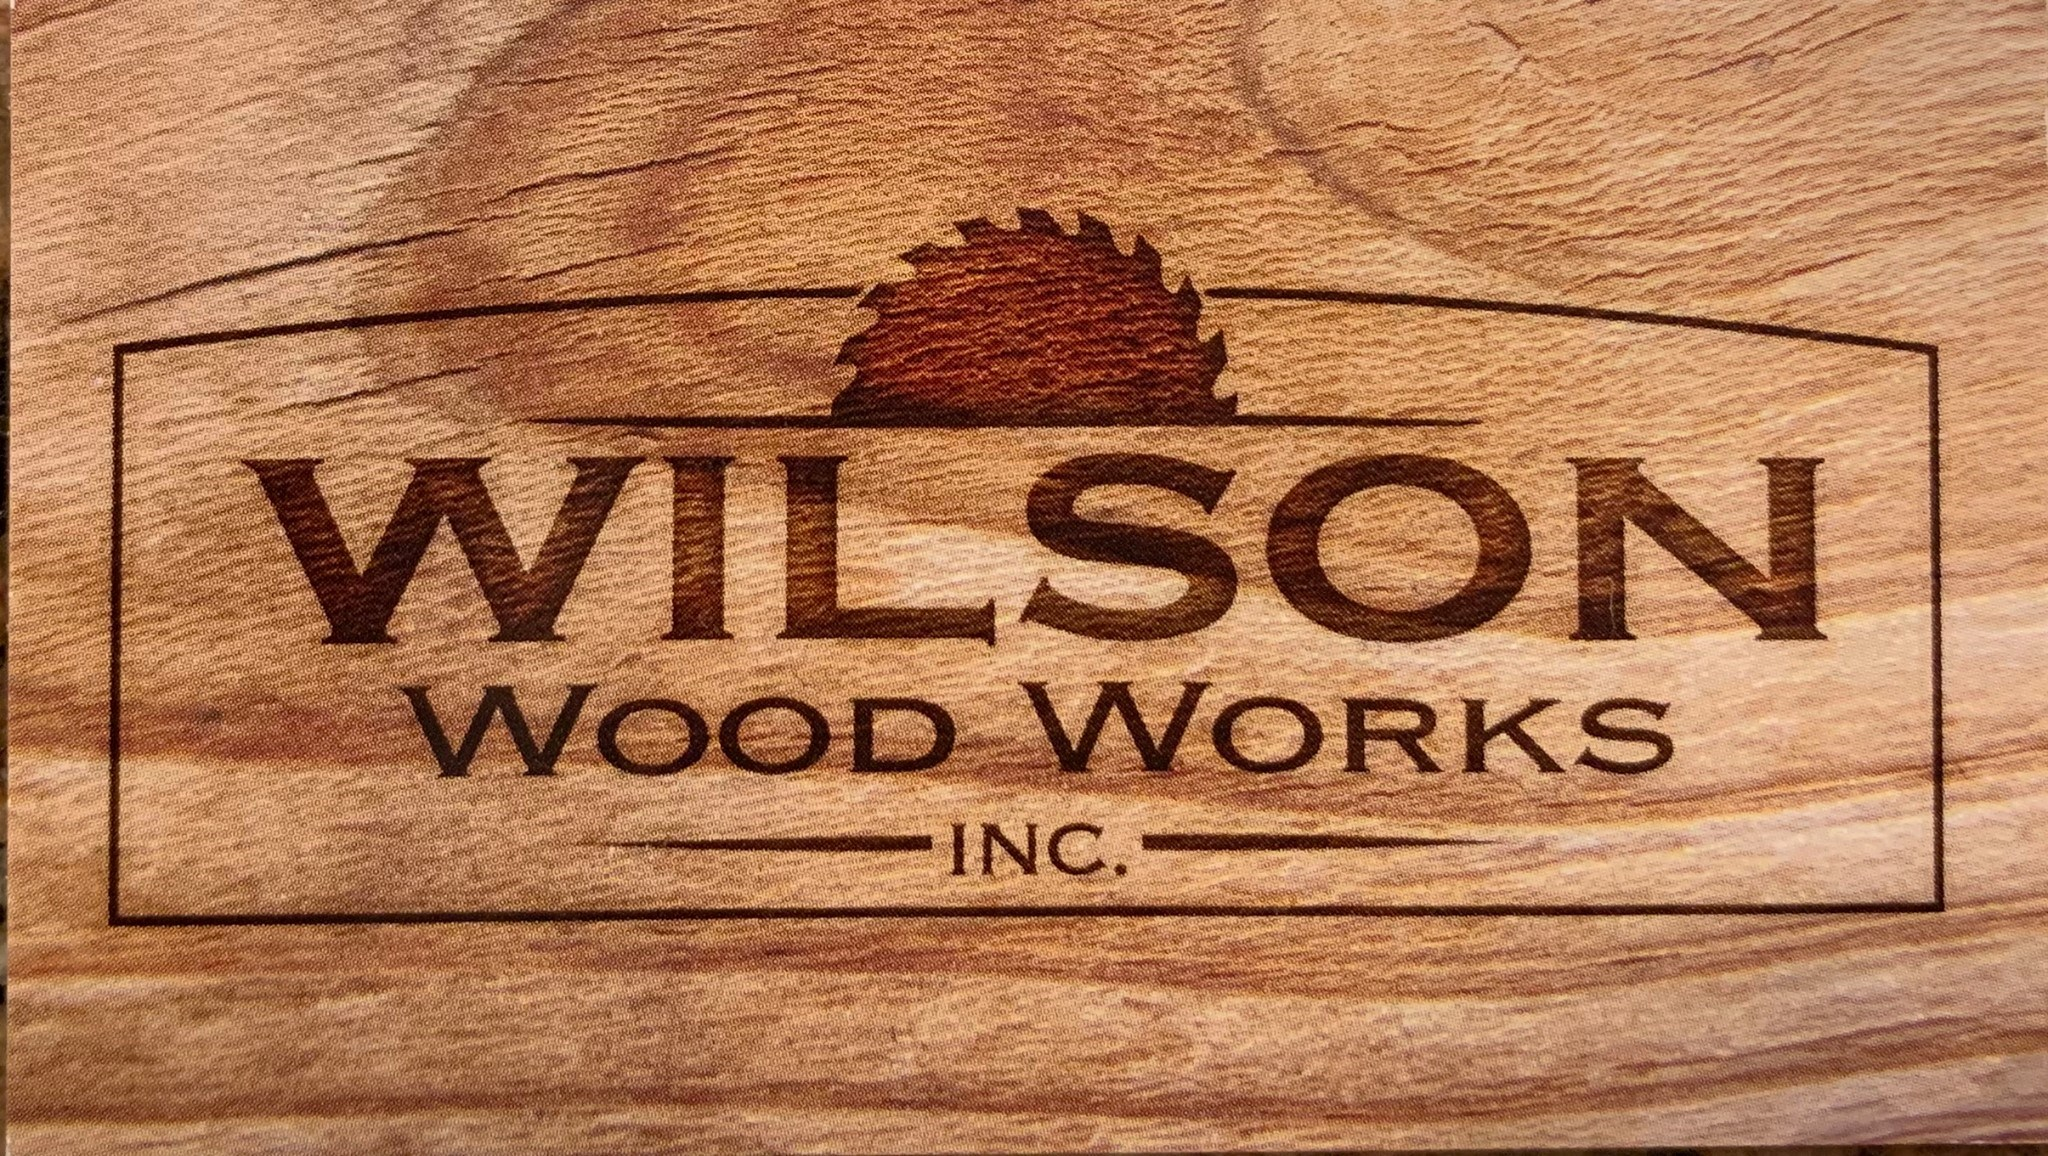 Wilson Wood Works, Inc Logo